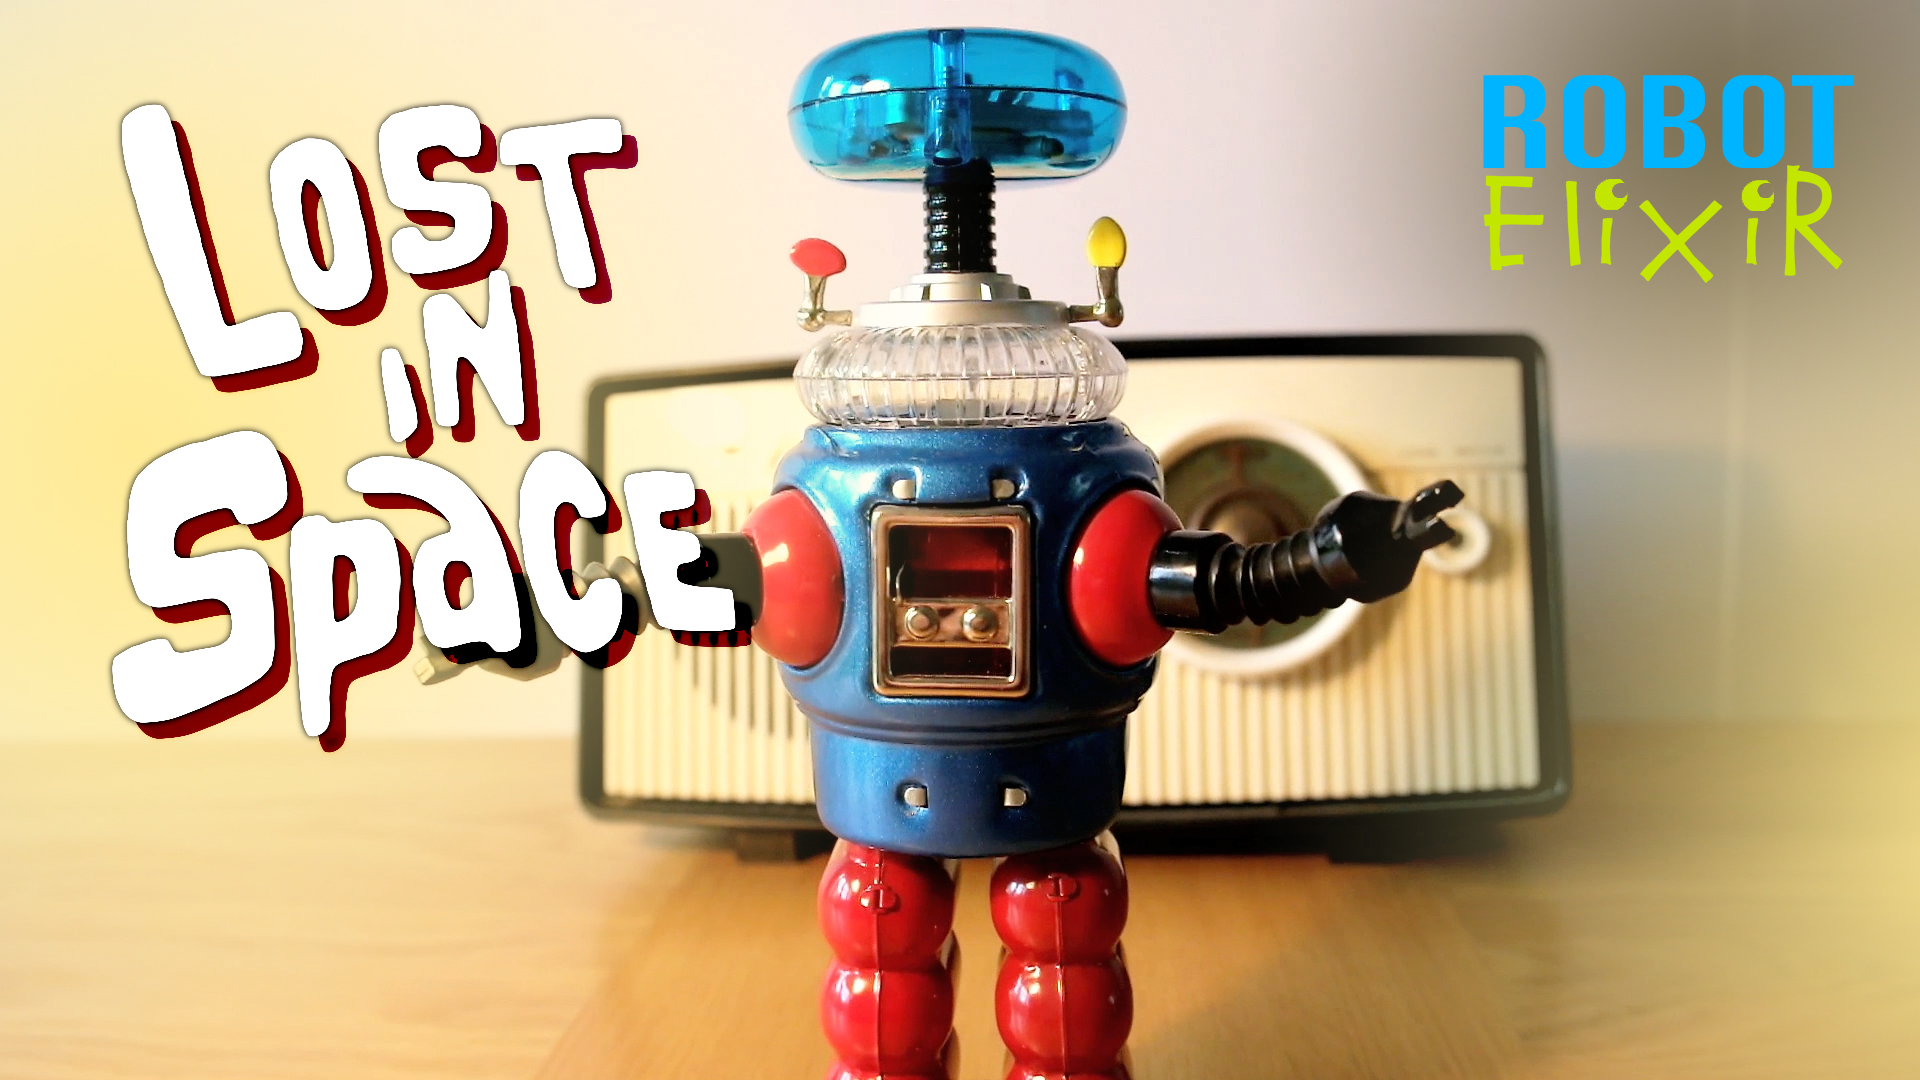 Lost in Space ROBOT B9 Toy